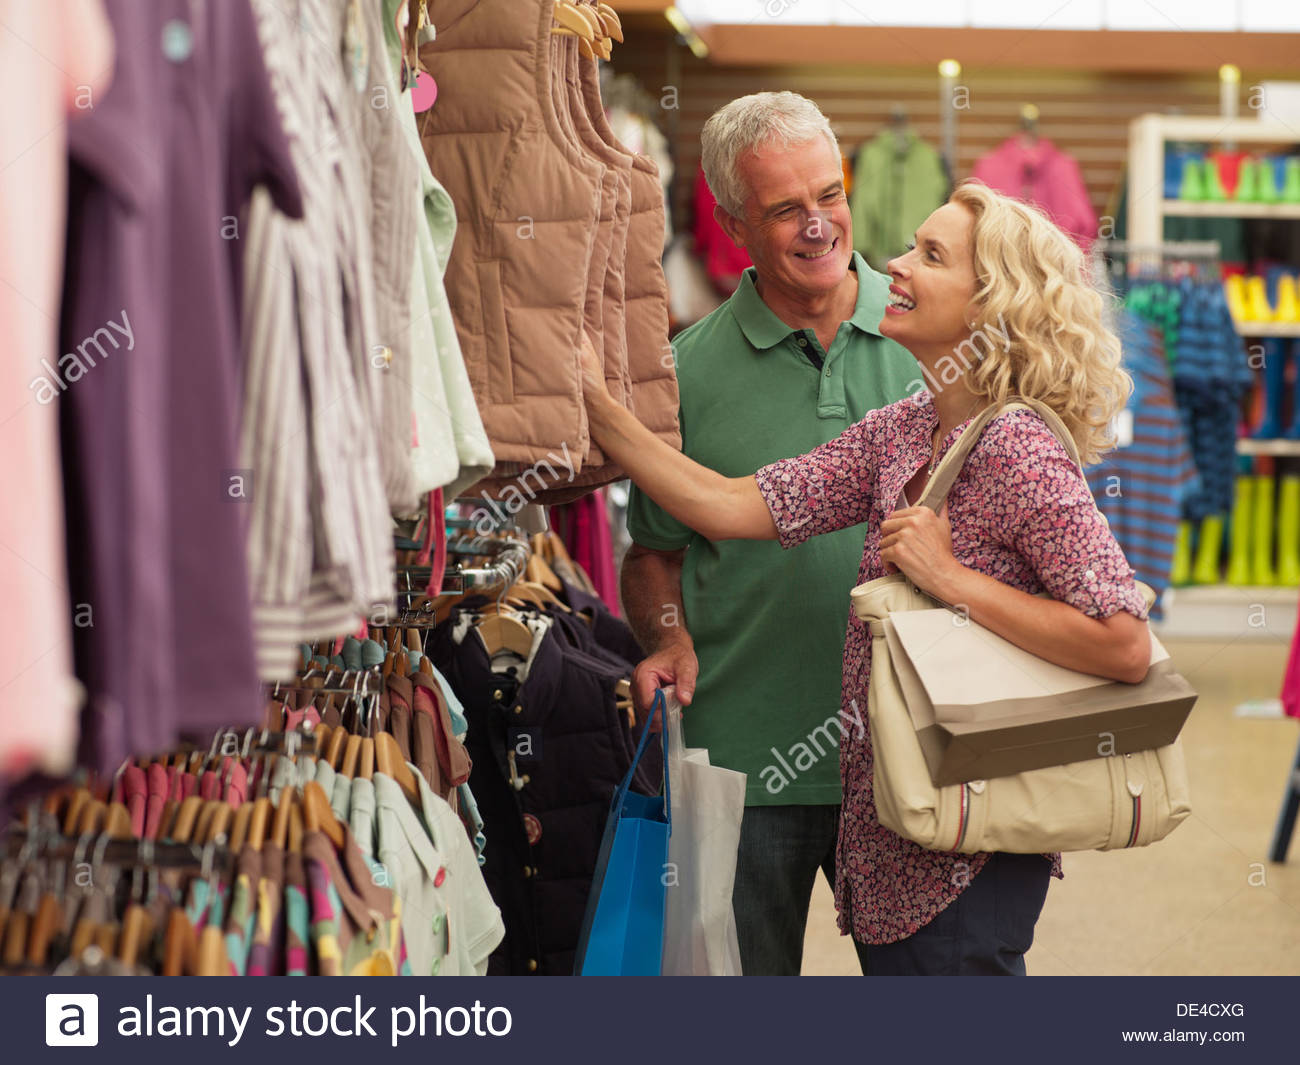 Couple shopping for clothing in store Photo Stock